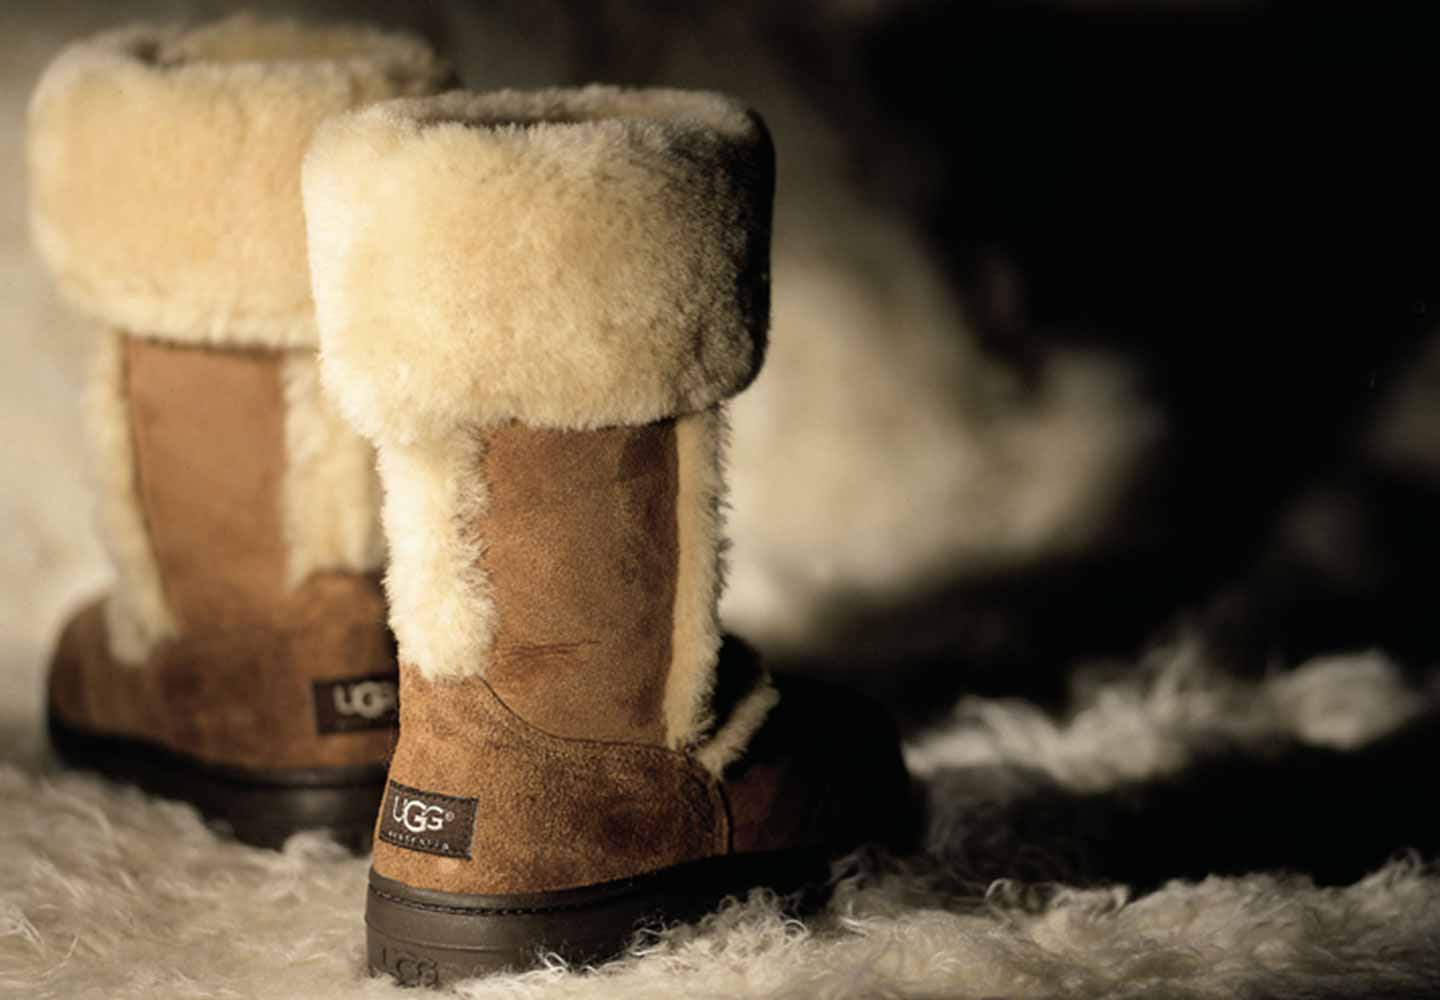 2000 Oprah's favorite thing the Ugg Katia boots